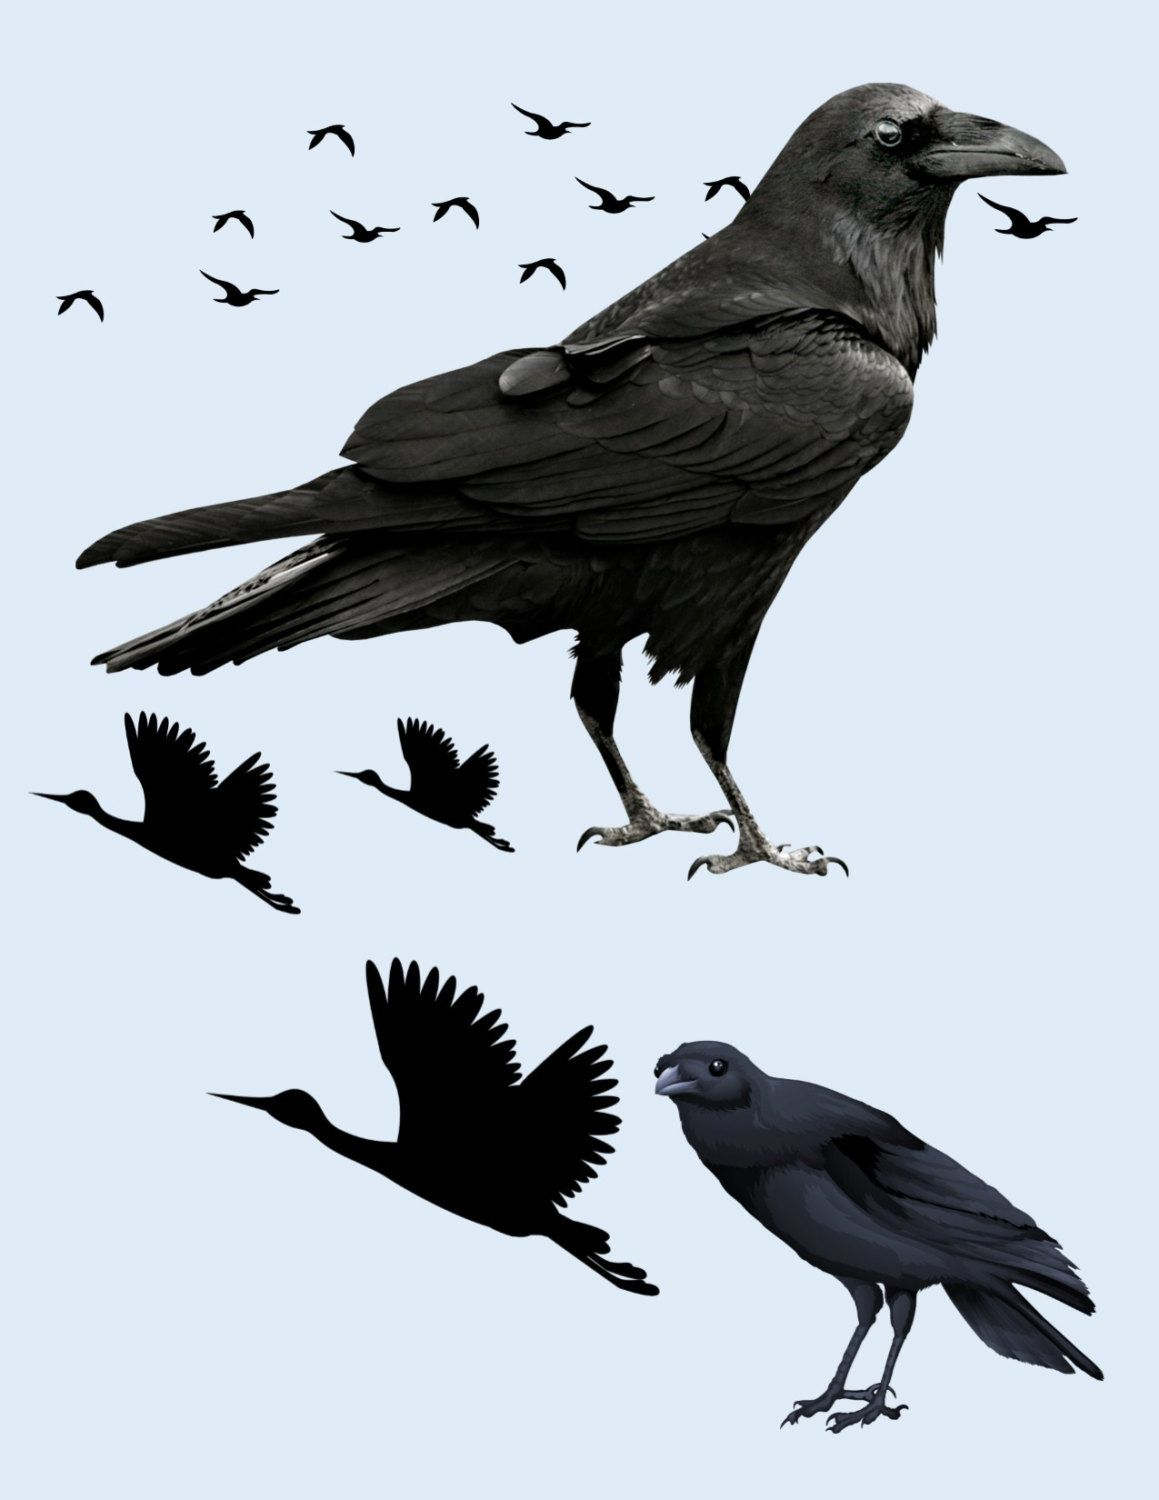 crow image crow cutout black bird image bird cutout large